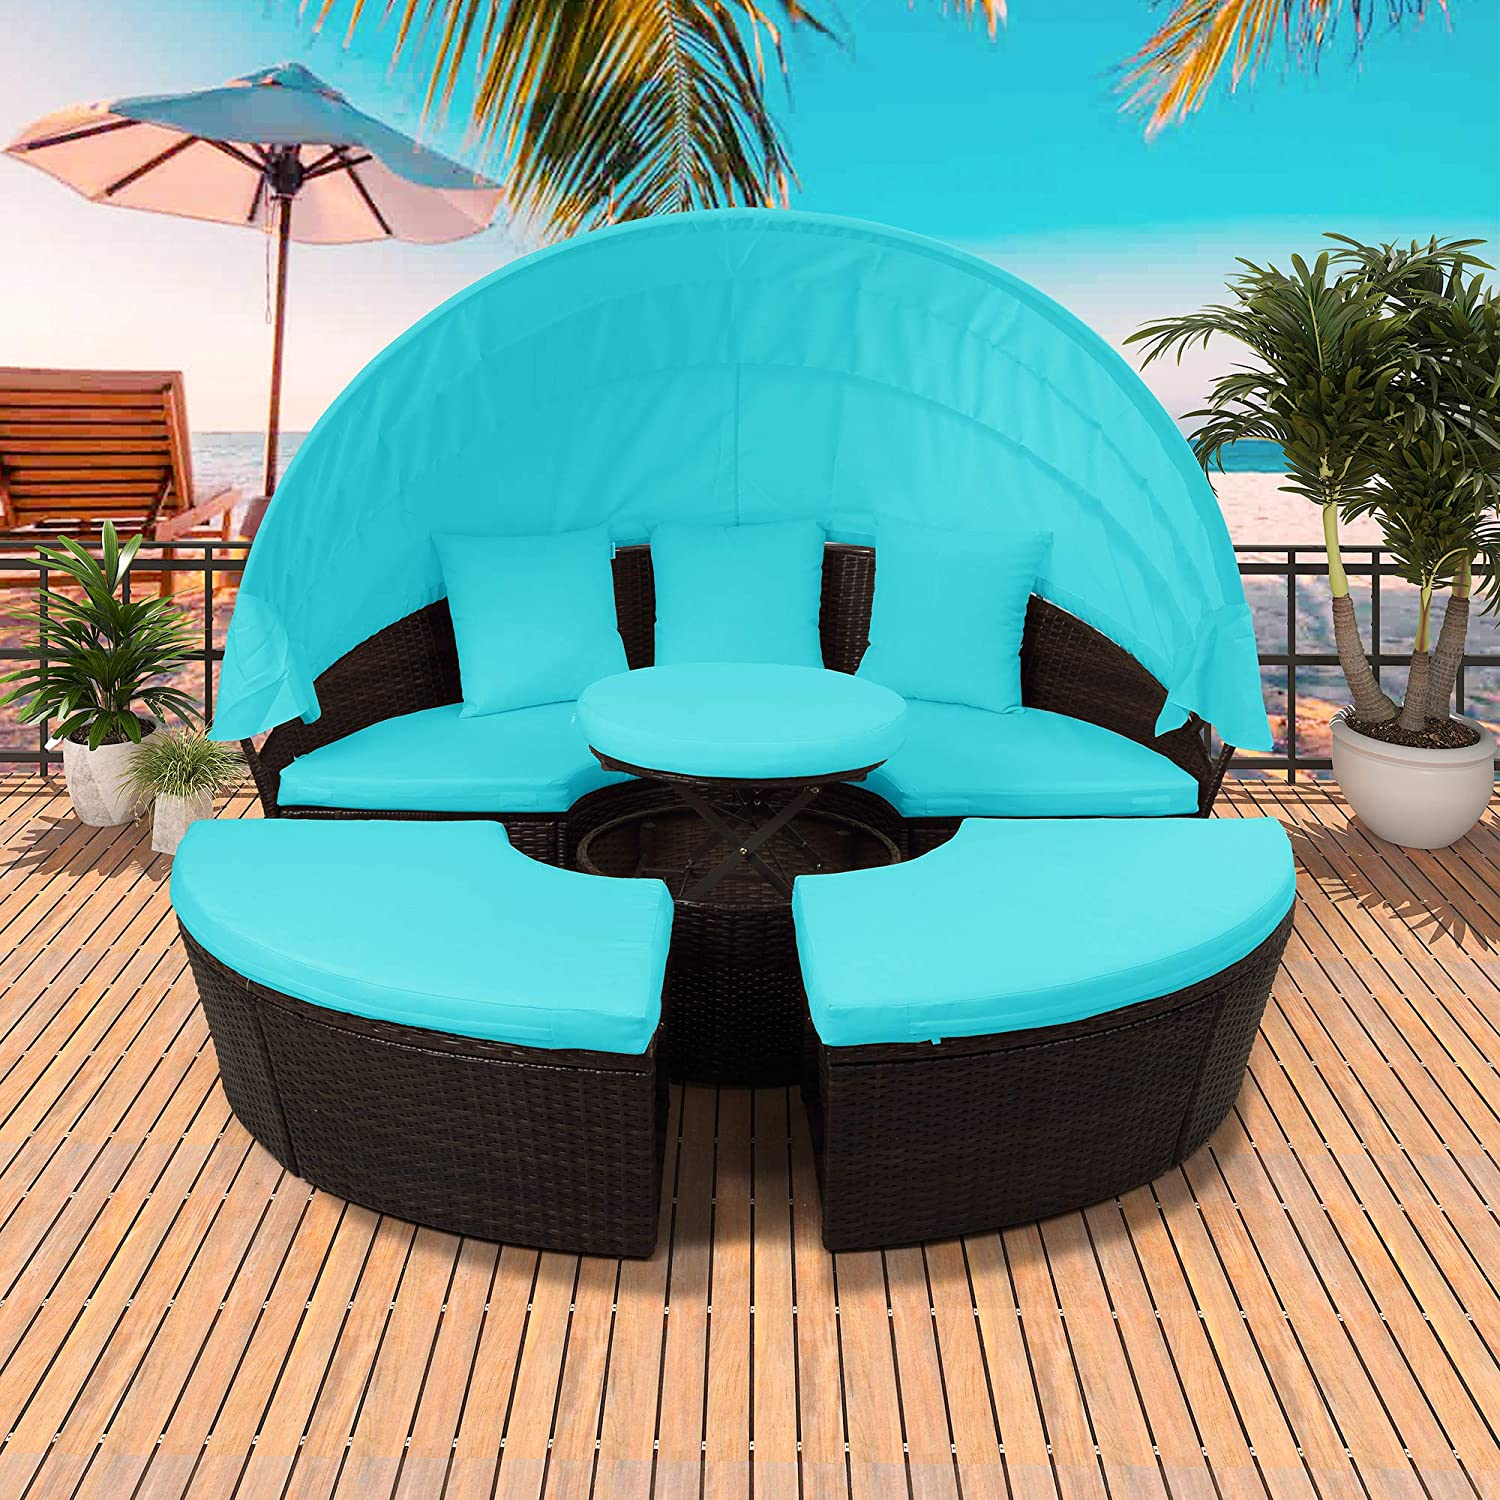 P PURLOVE Round Outdoor Austin Mall Sectional Rattan Daybed Set Sunbed Sofa Choice